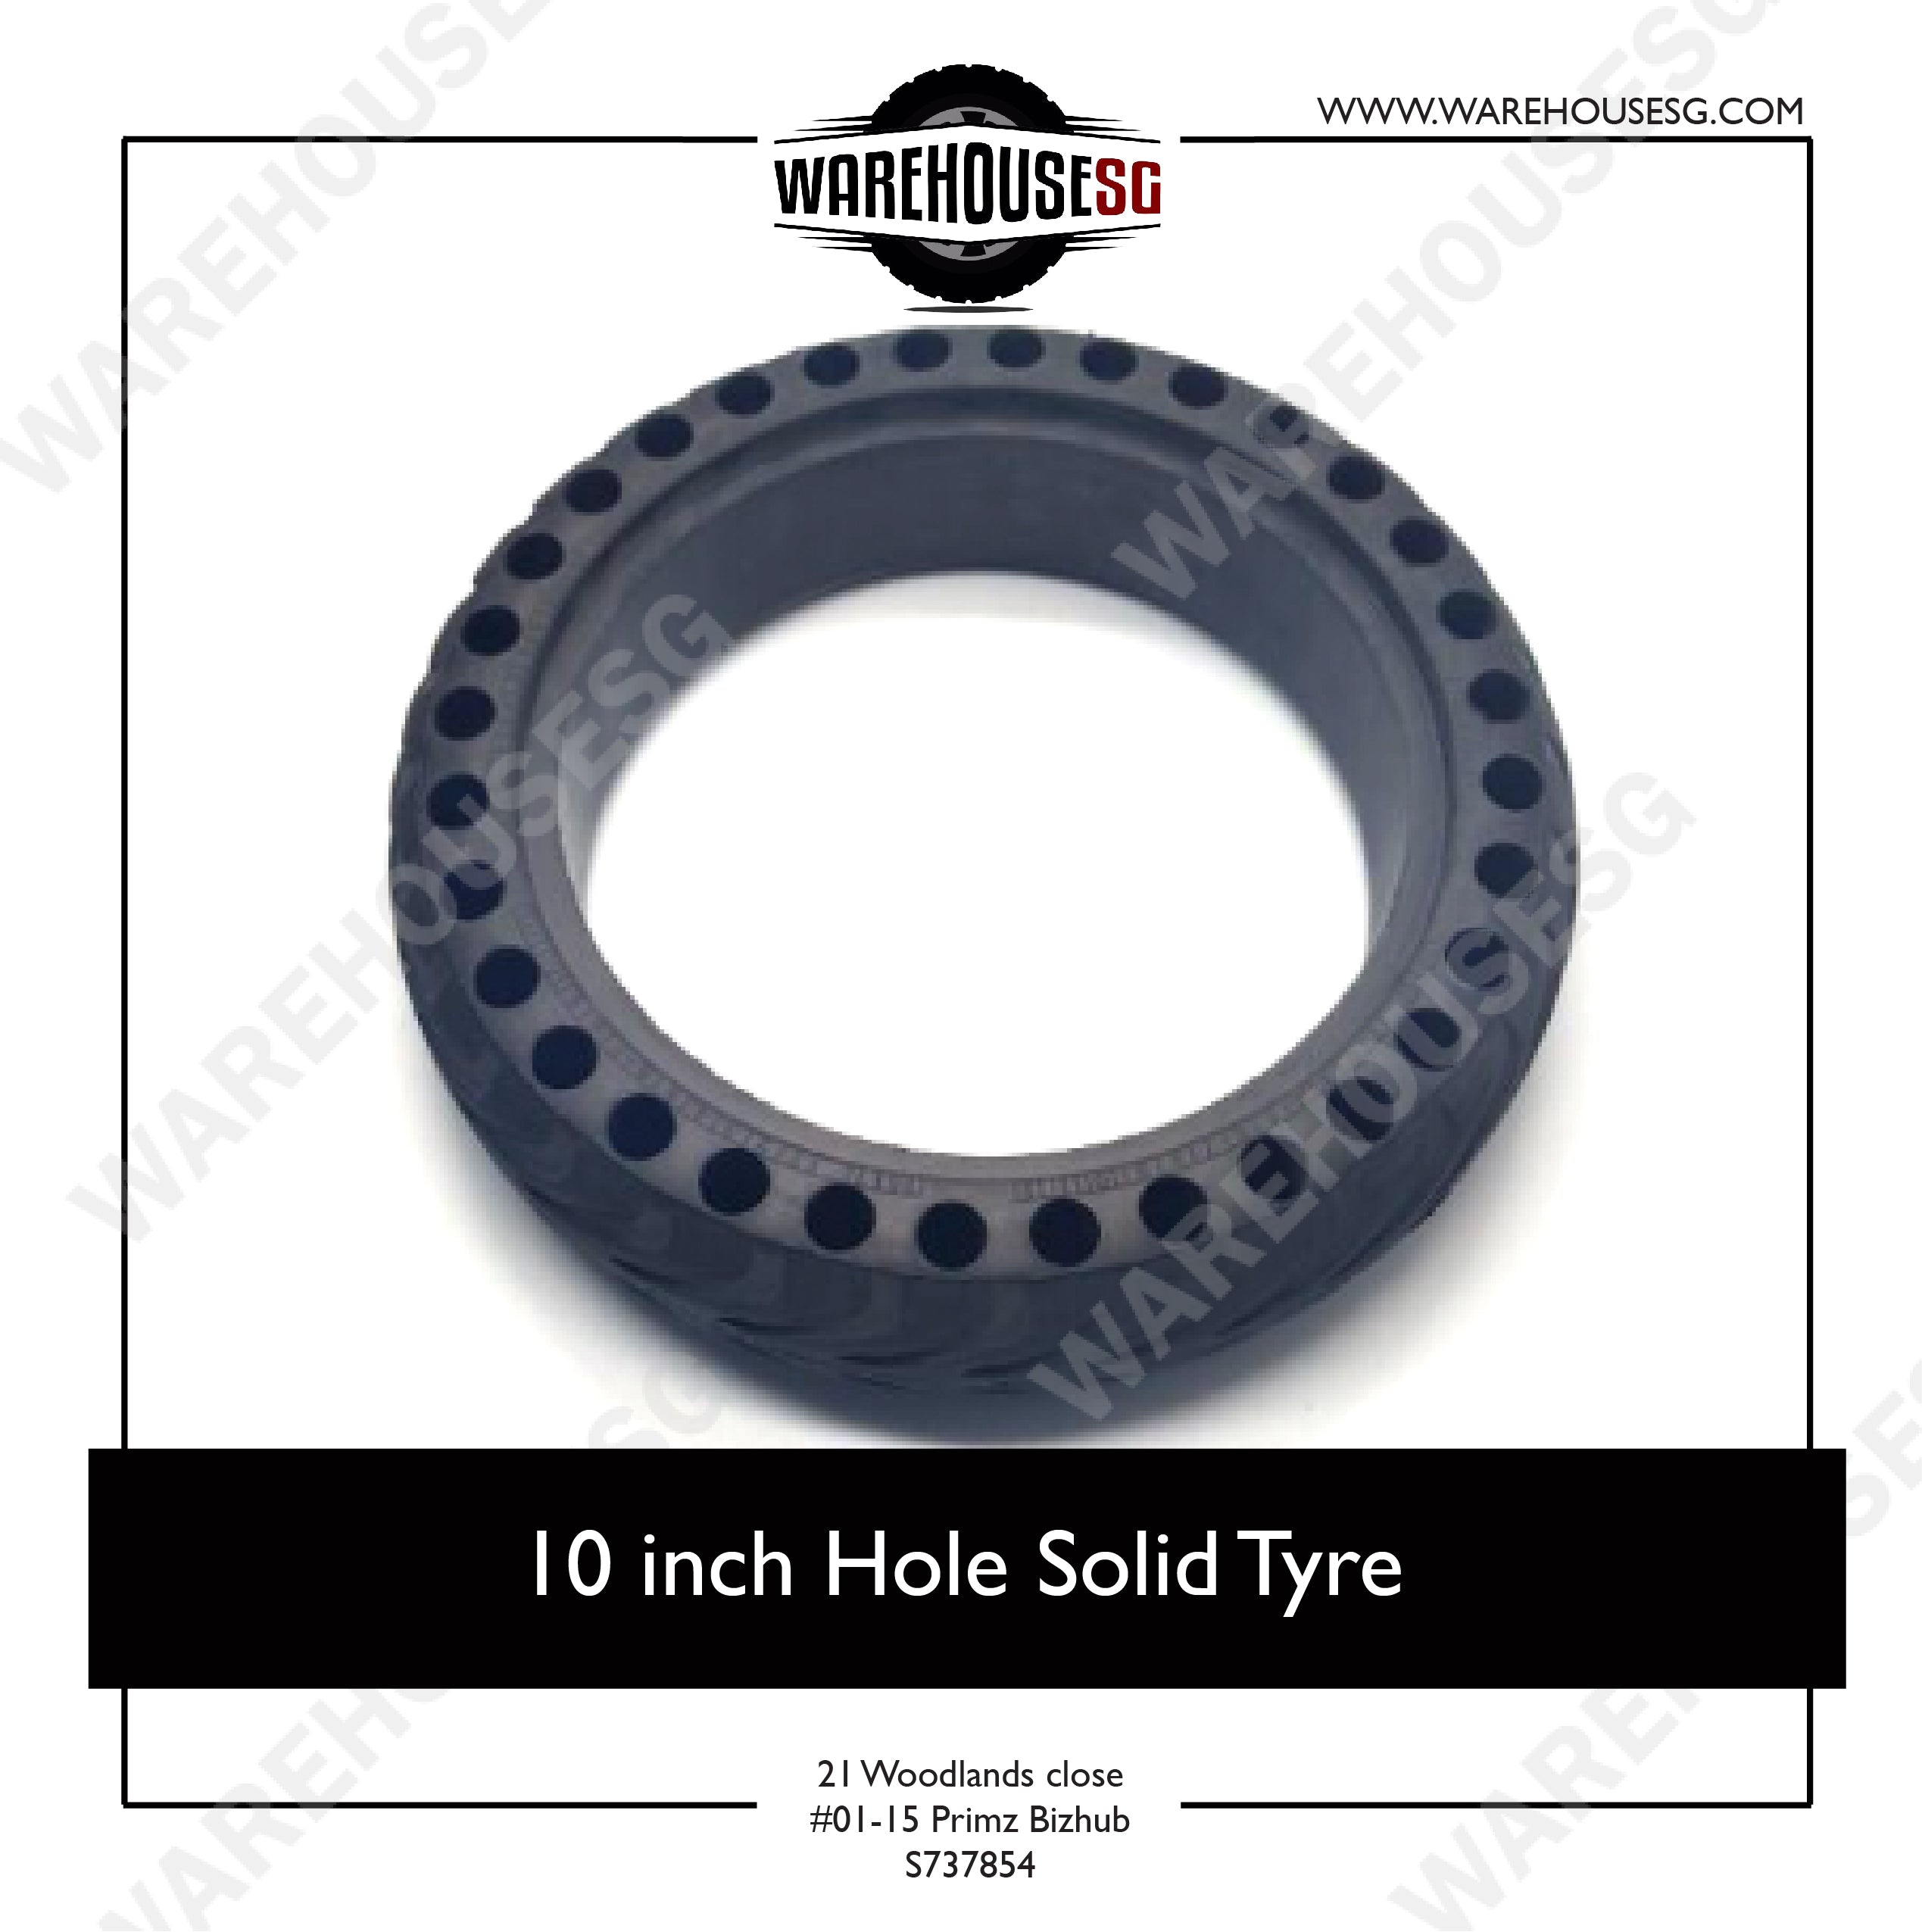 10 Inch Hole Solid Tyre w Hole